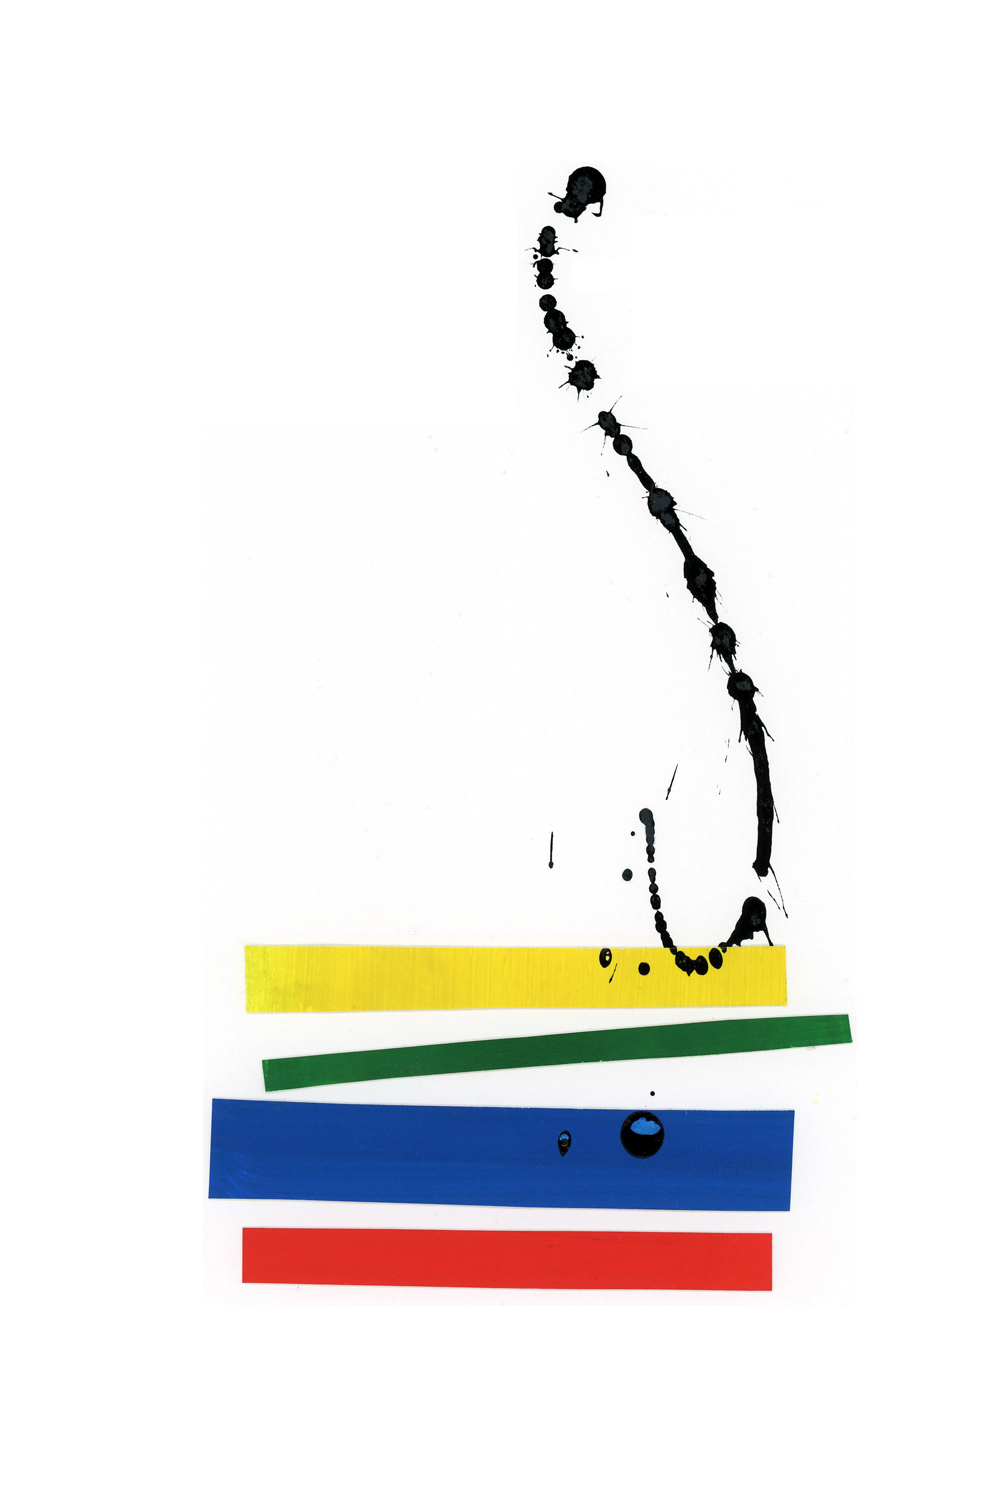 primary colors collage series, collage no. 4